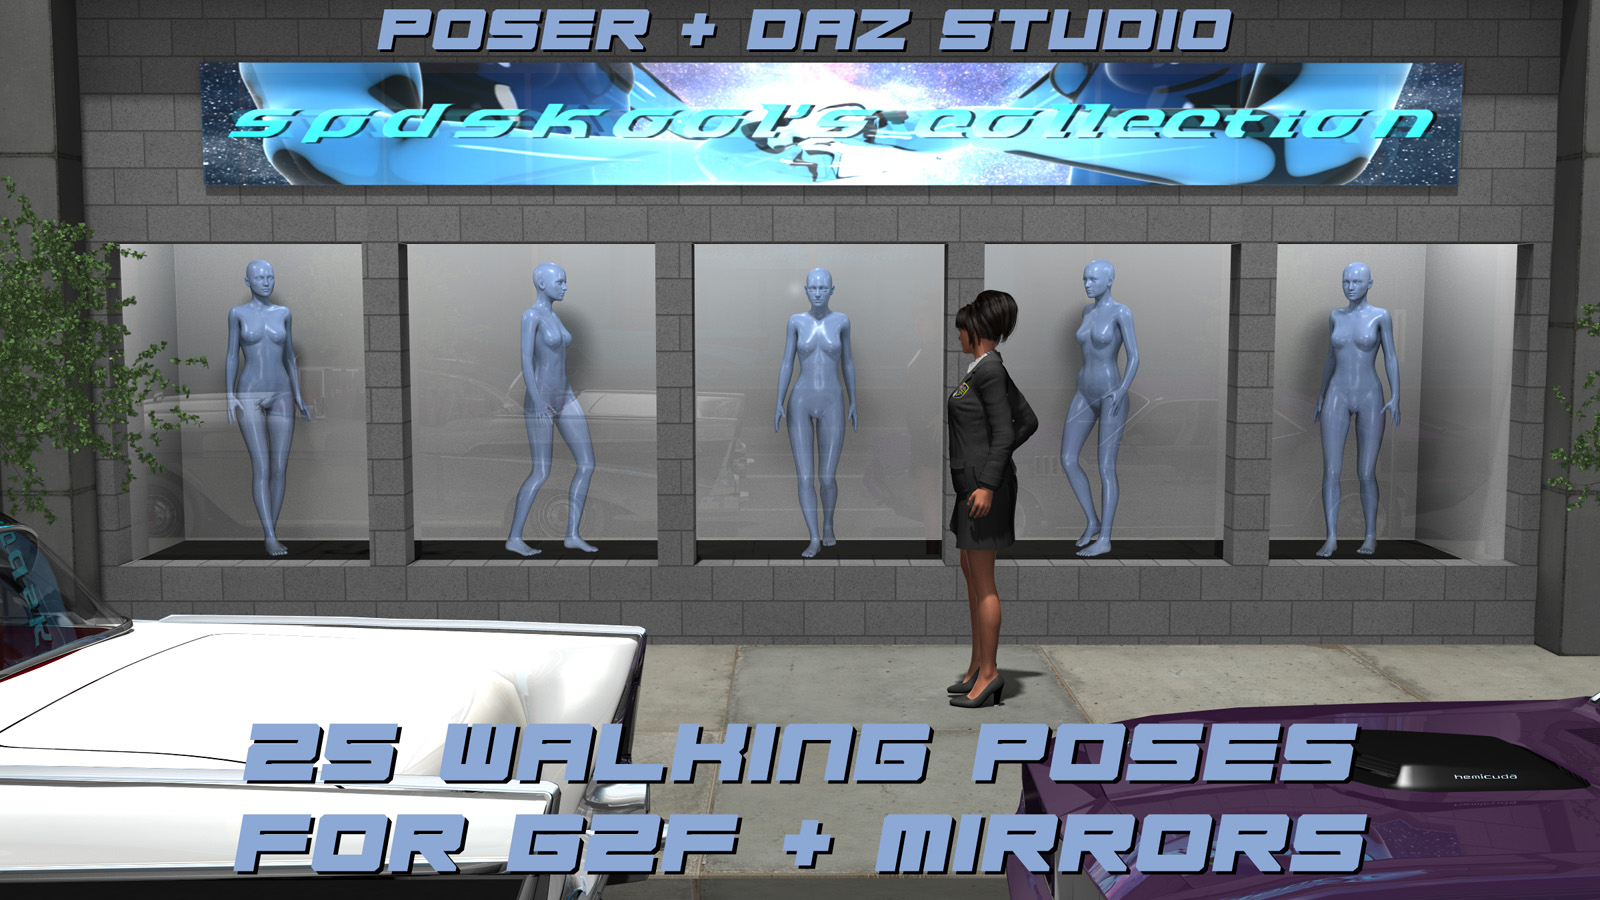 25 Walking Poses for G2F